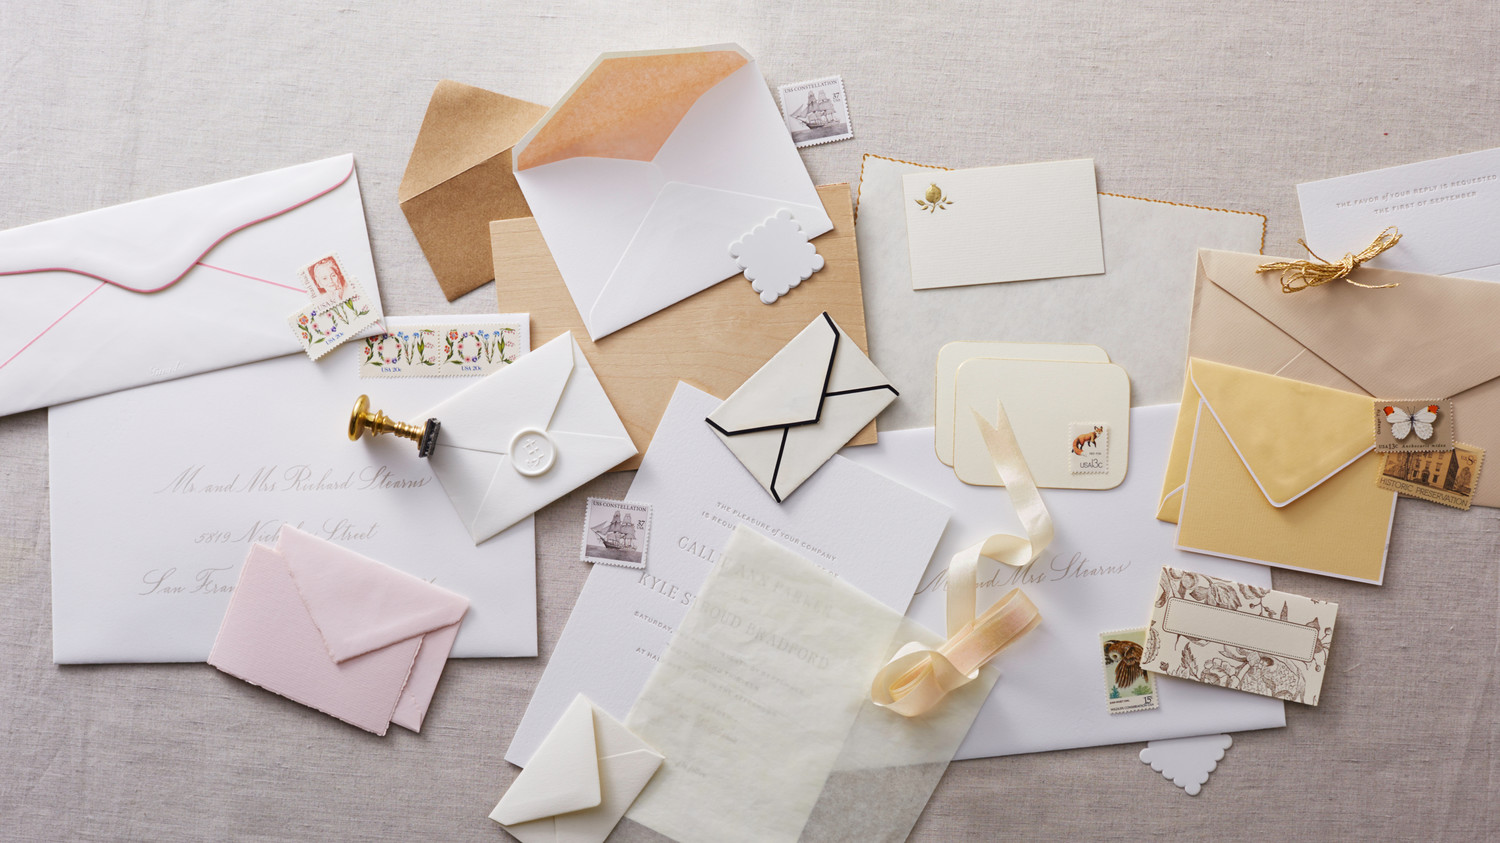 How To Write On Envelope For Wedding Invitations: How To Address Guests On Wedding Invitation Envelopes